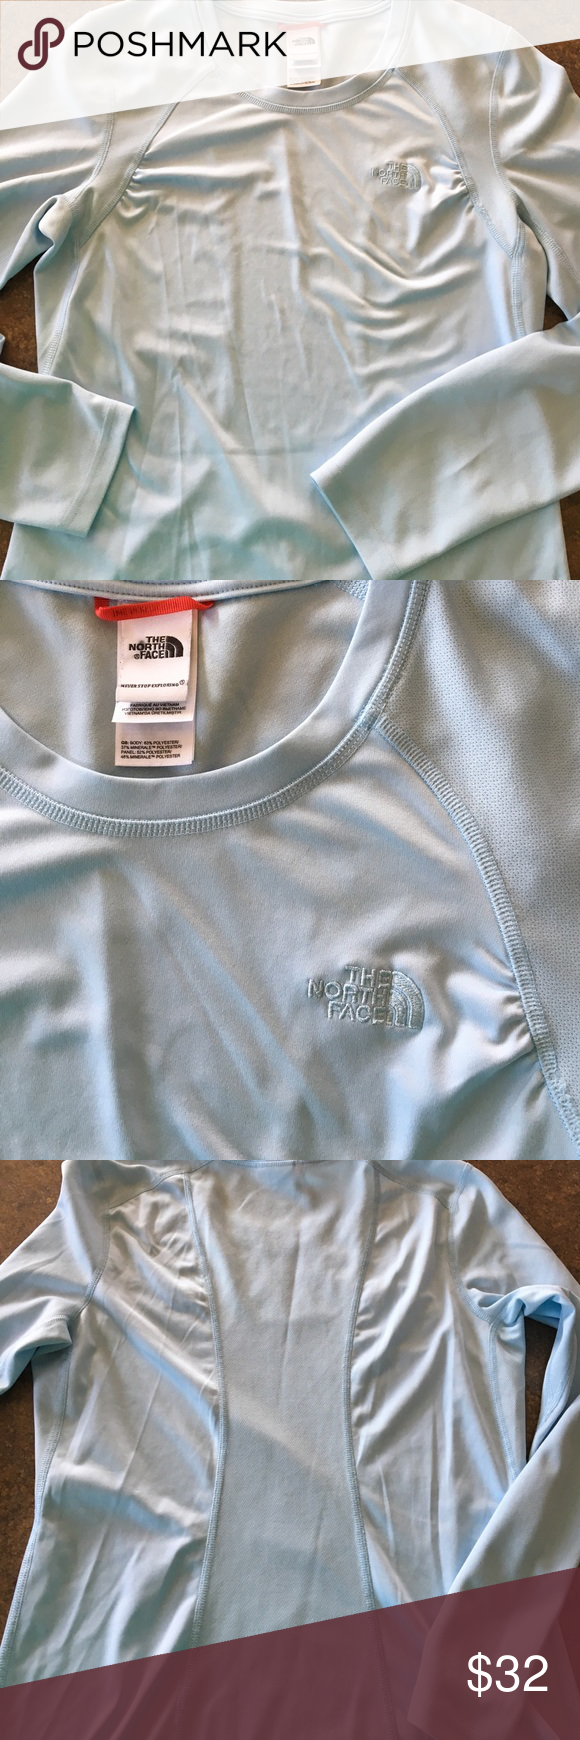 The North Face Women's Activewear Top Baby Blue Baby blue women's long sleeve activewear top/shirt by The North Face. Baby Blue and beautiful! The North Face Tops Tees - Long Sleeve